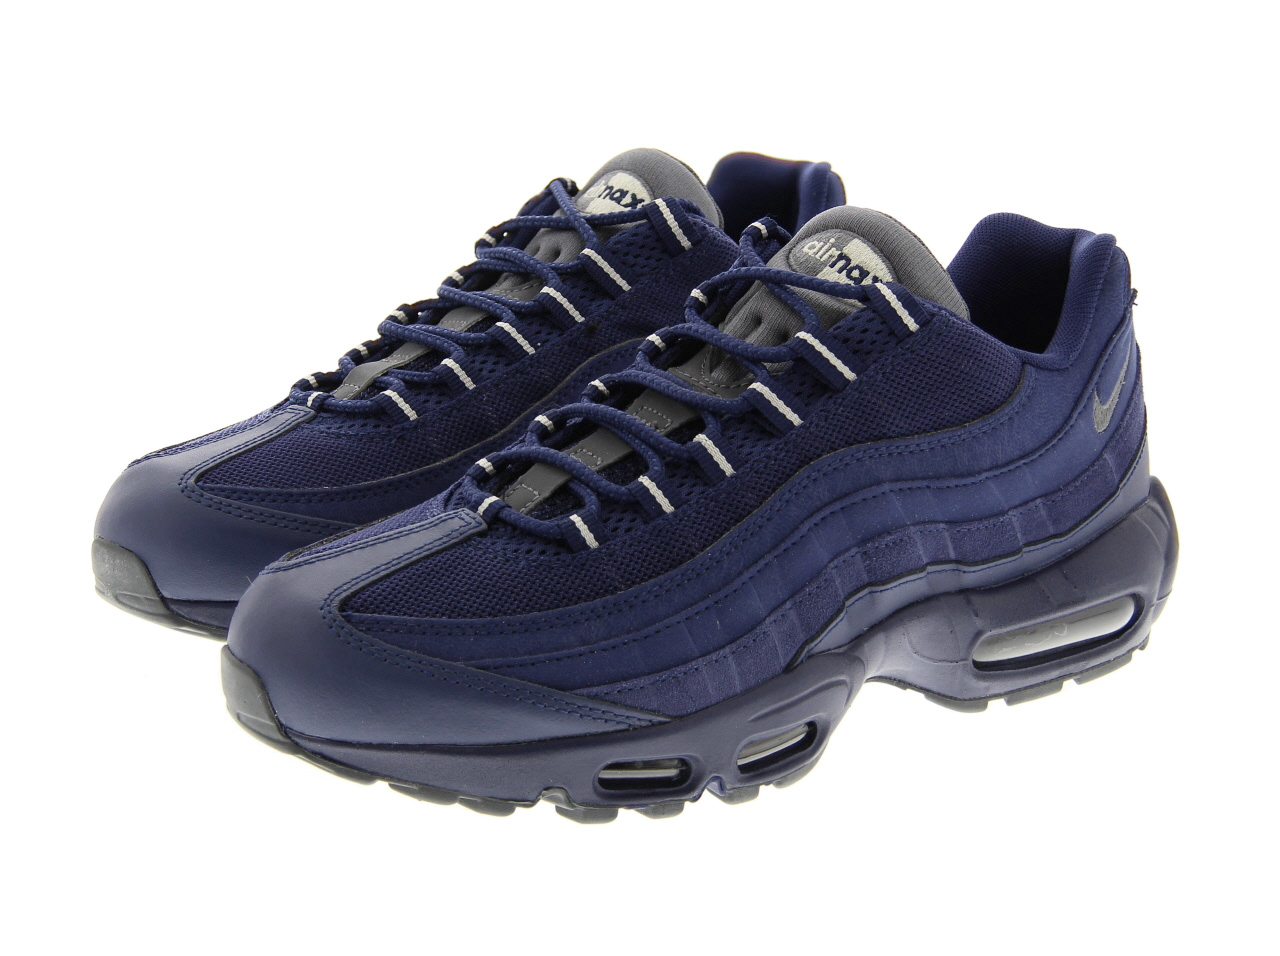 b925c6918f Buy air max 95 dark blue > up to 44% Discounts